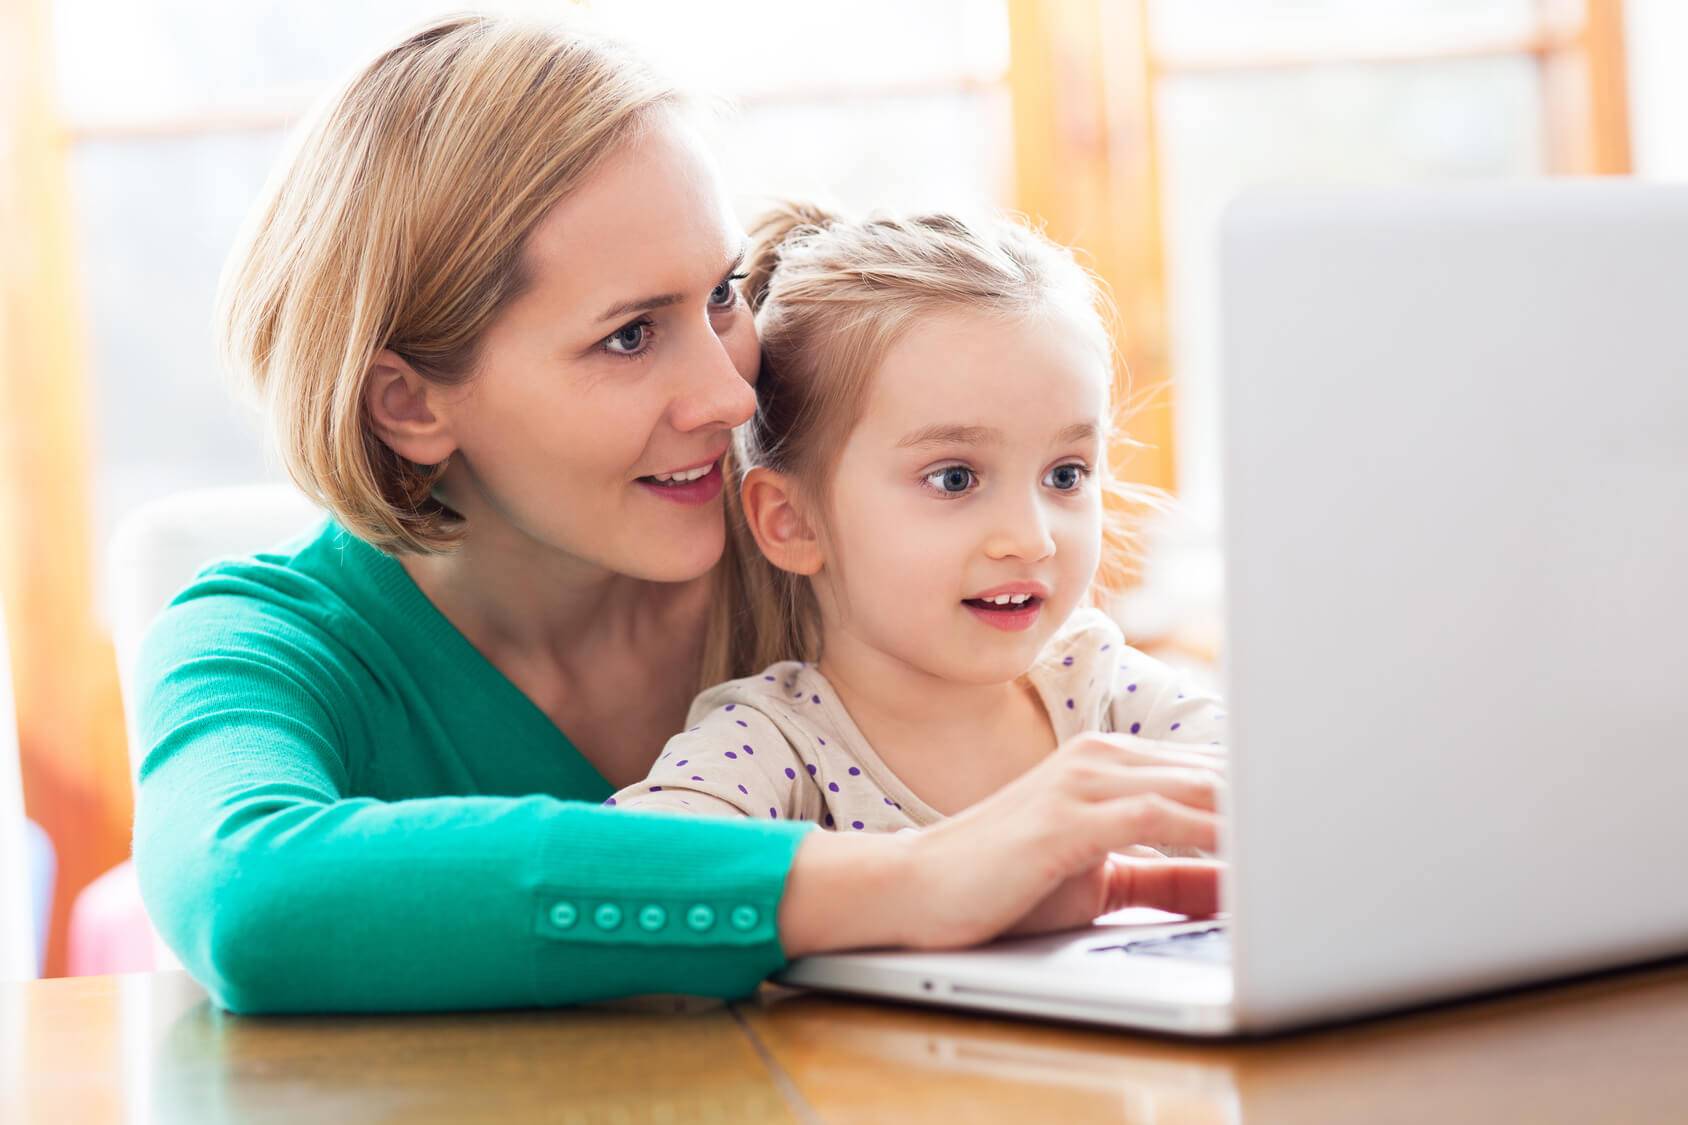 woman and daughter look at computer amazed